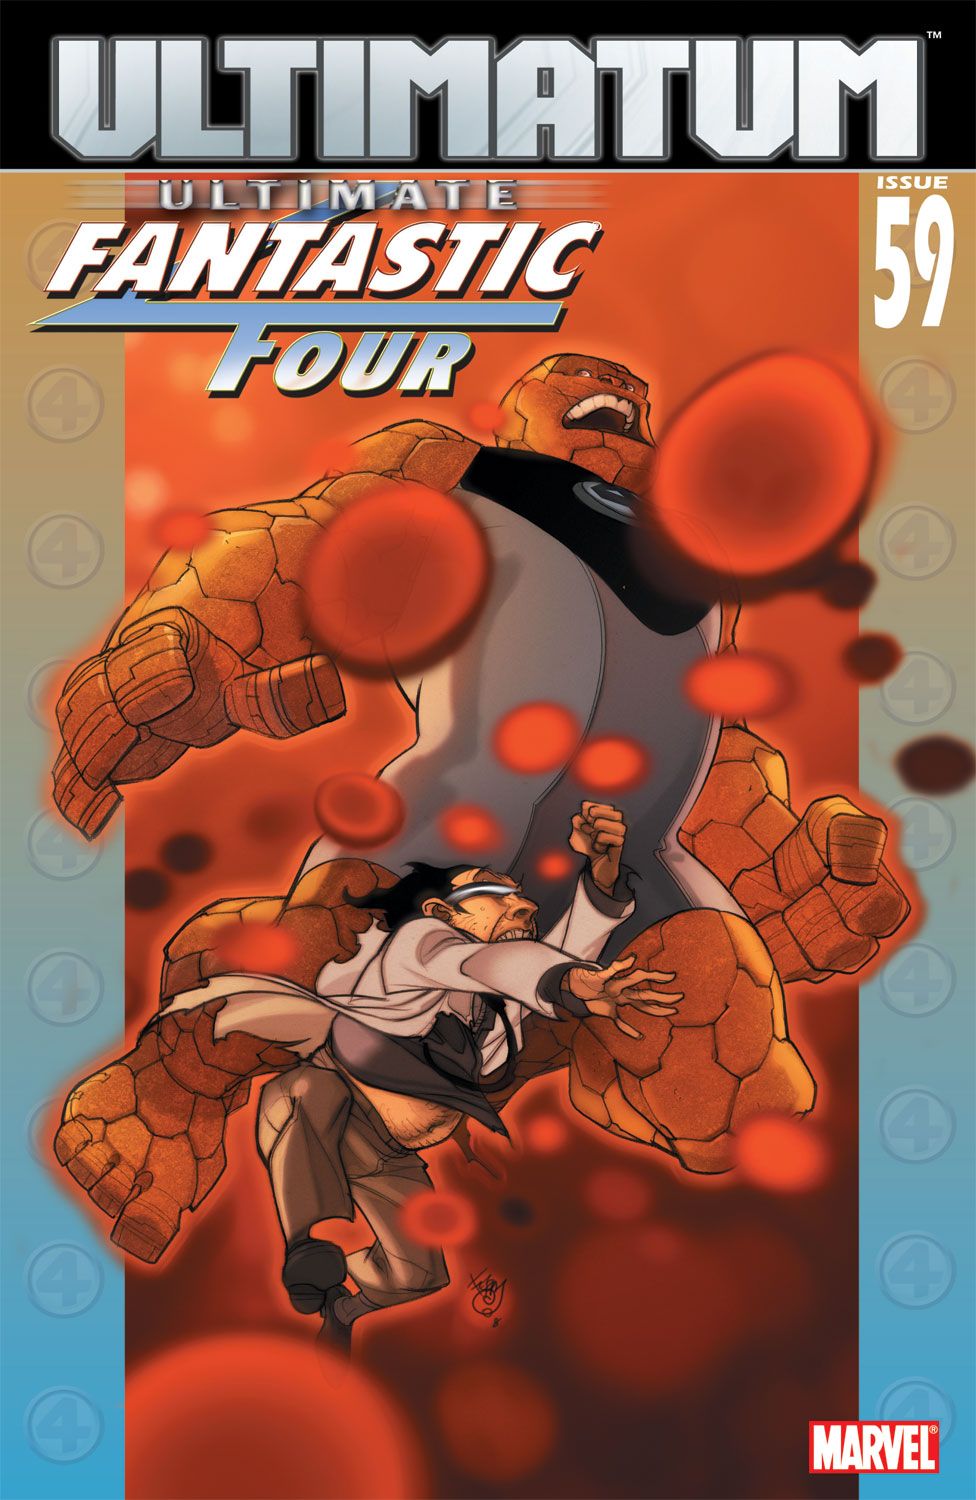 Read online Ultimate Fantastic Four (2004) comic -  Issue #59 - 1